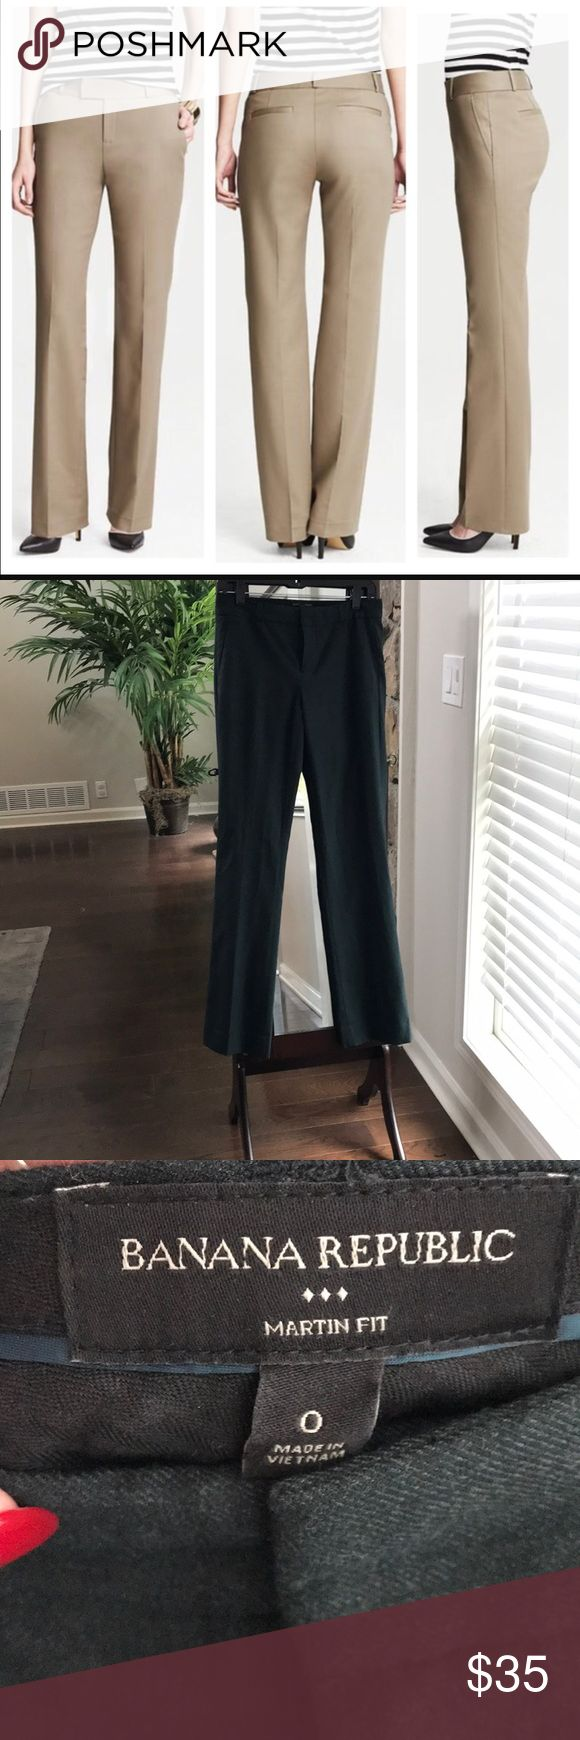 Banana Republic Martin Fit Straight Leg Pants Deep hunter green color. First pic is not the actual color, but I posted to show cut and fit. Only worn 2 times. Great Condition. Drycleaned. Lined. Moving soon, make me an offer! Banana Republic Pants Straight Leg